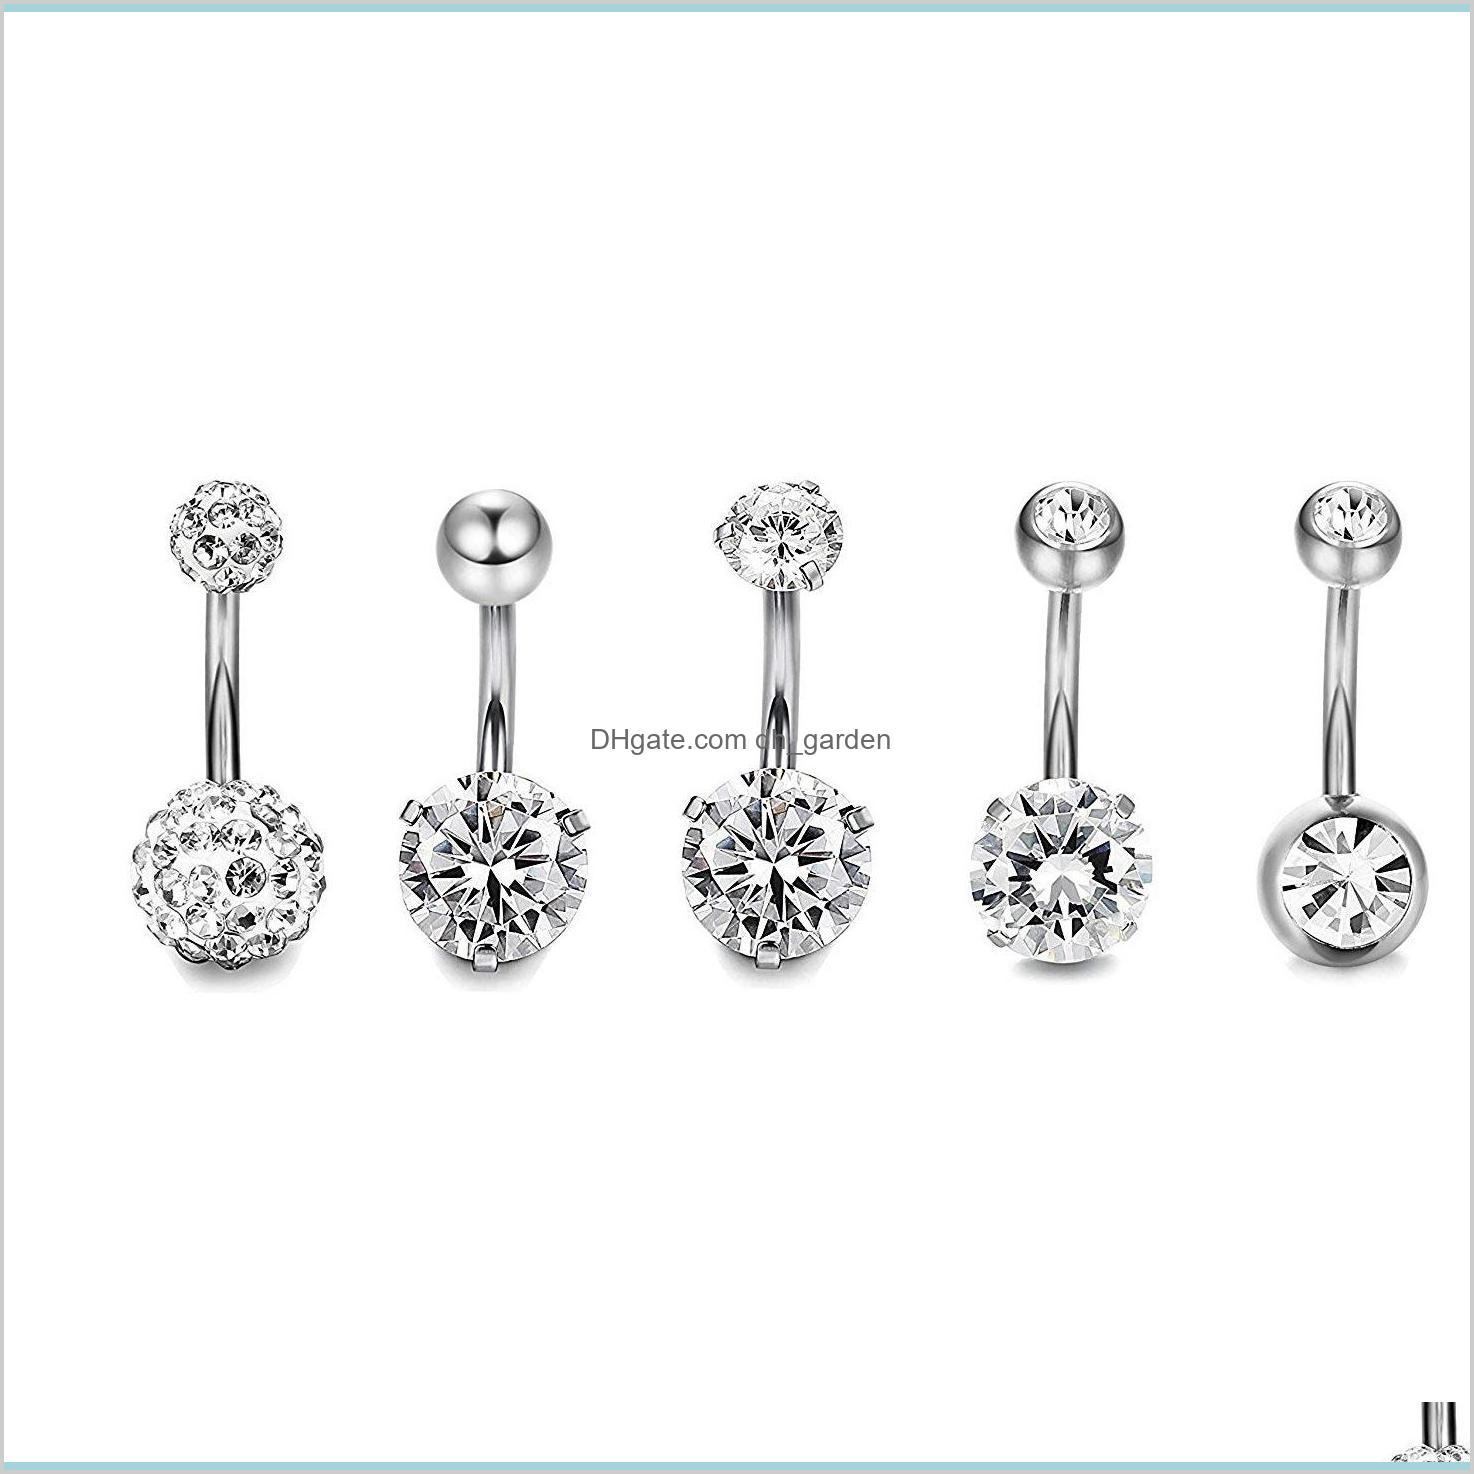 5pcs/set round love heart cute crystal body jewelry piercings stainless steel rhinestone navel & bell button piercing rings for women